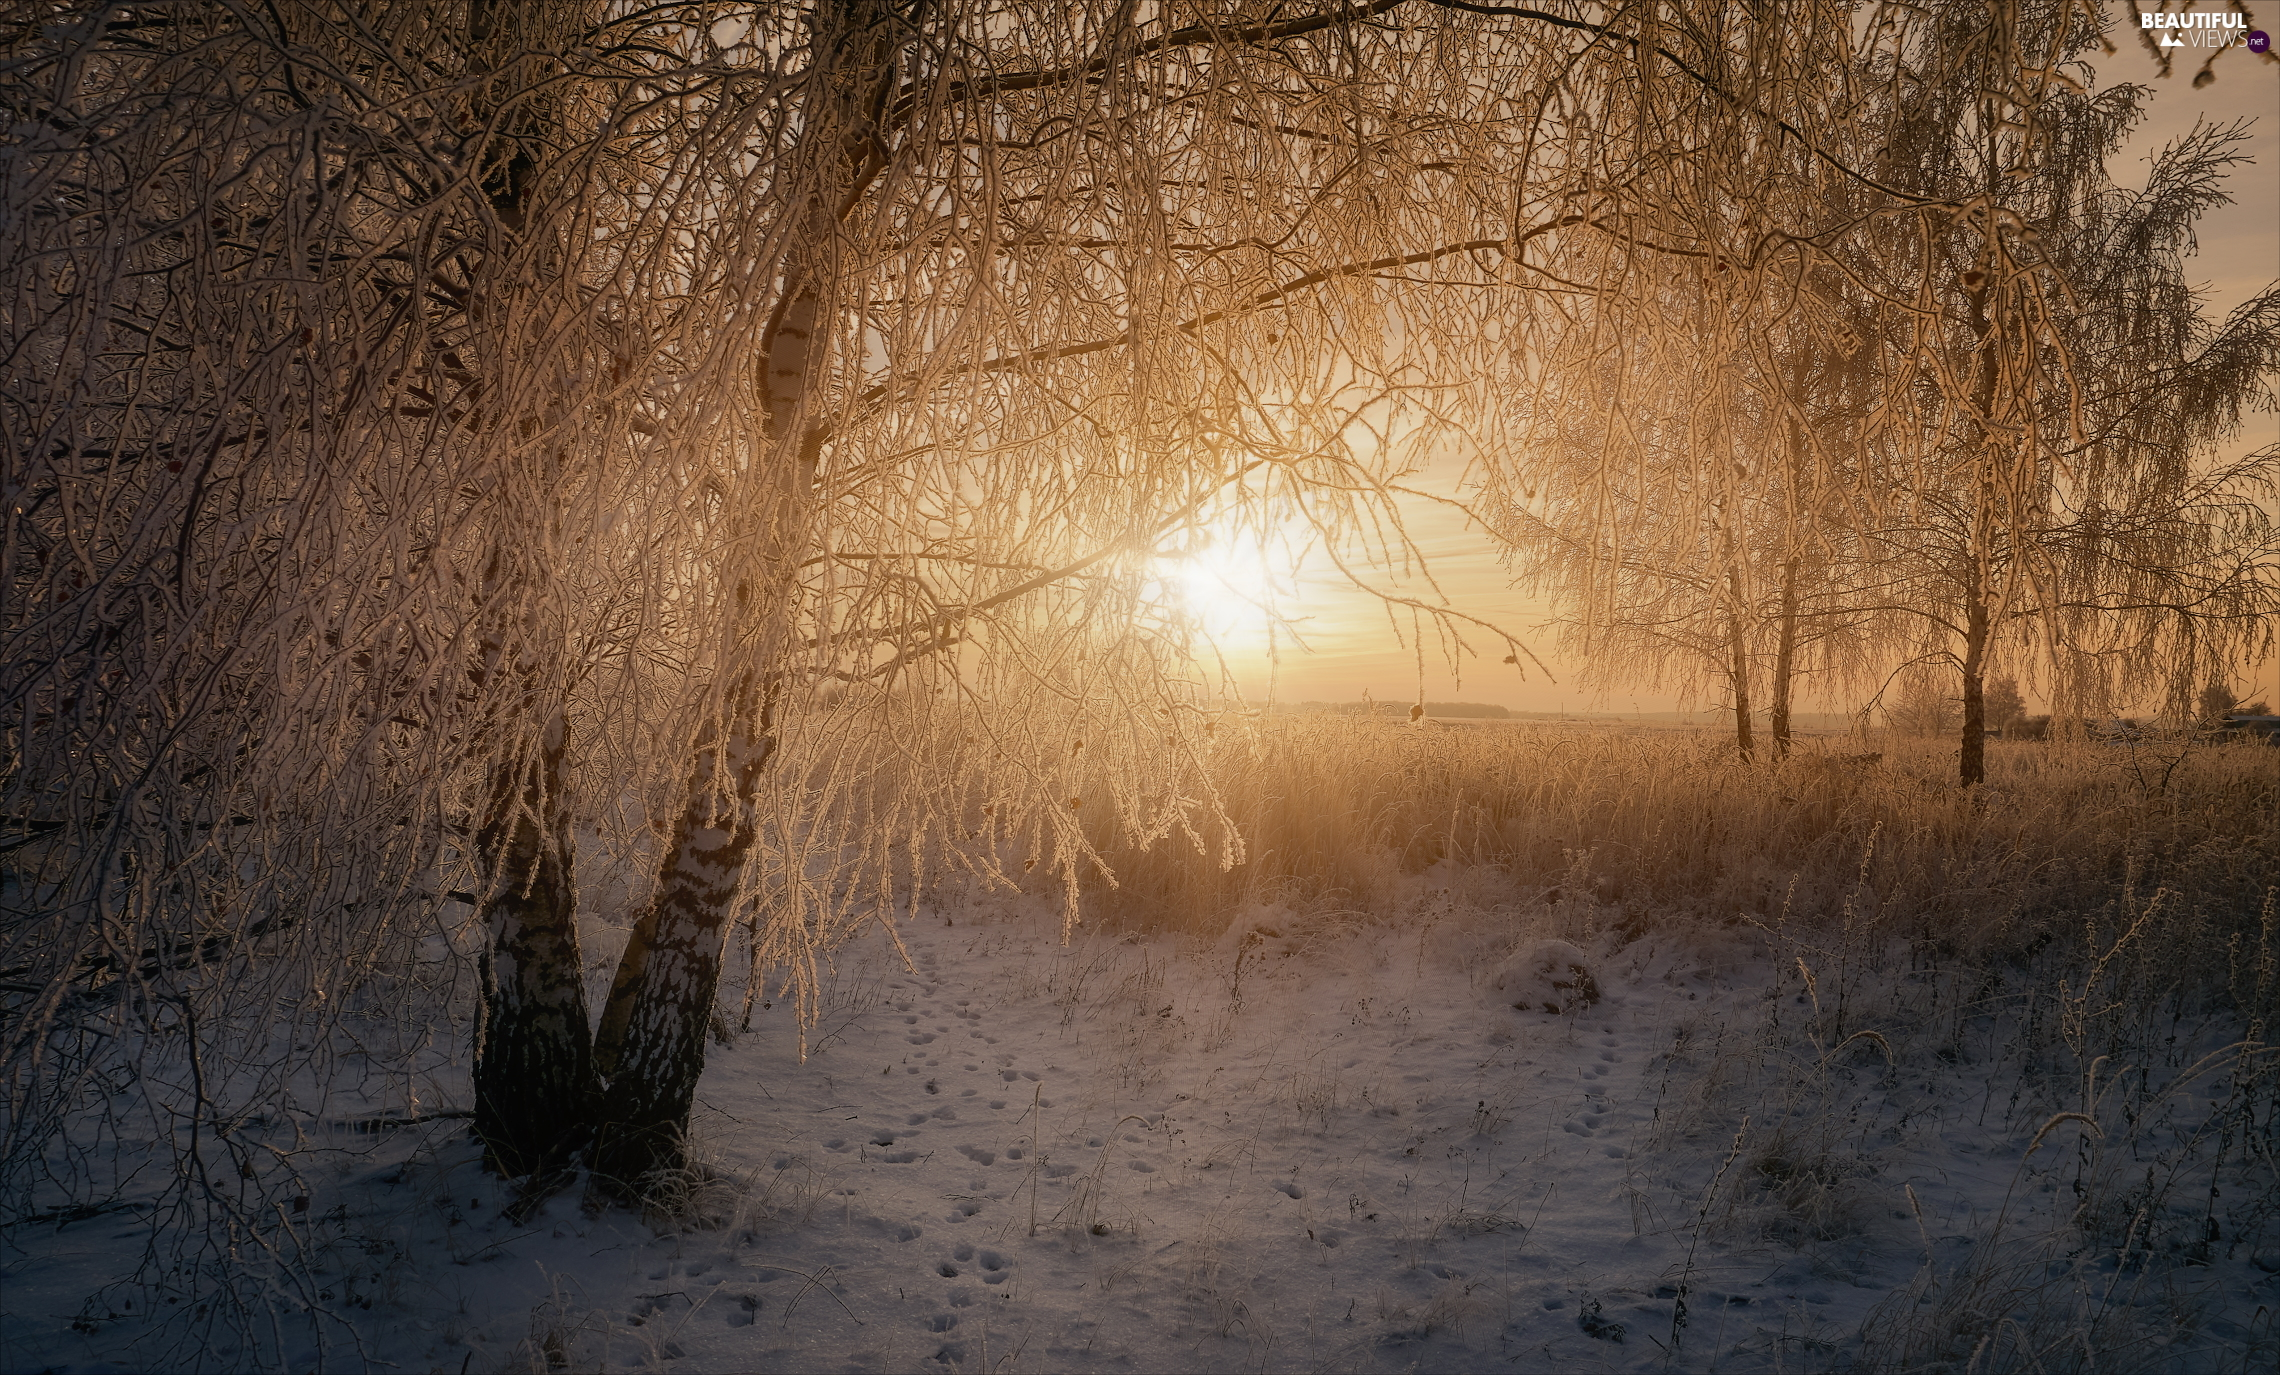 viewes, Snowy, winter, trees, frosty, grass, Sunrise